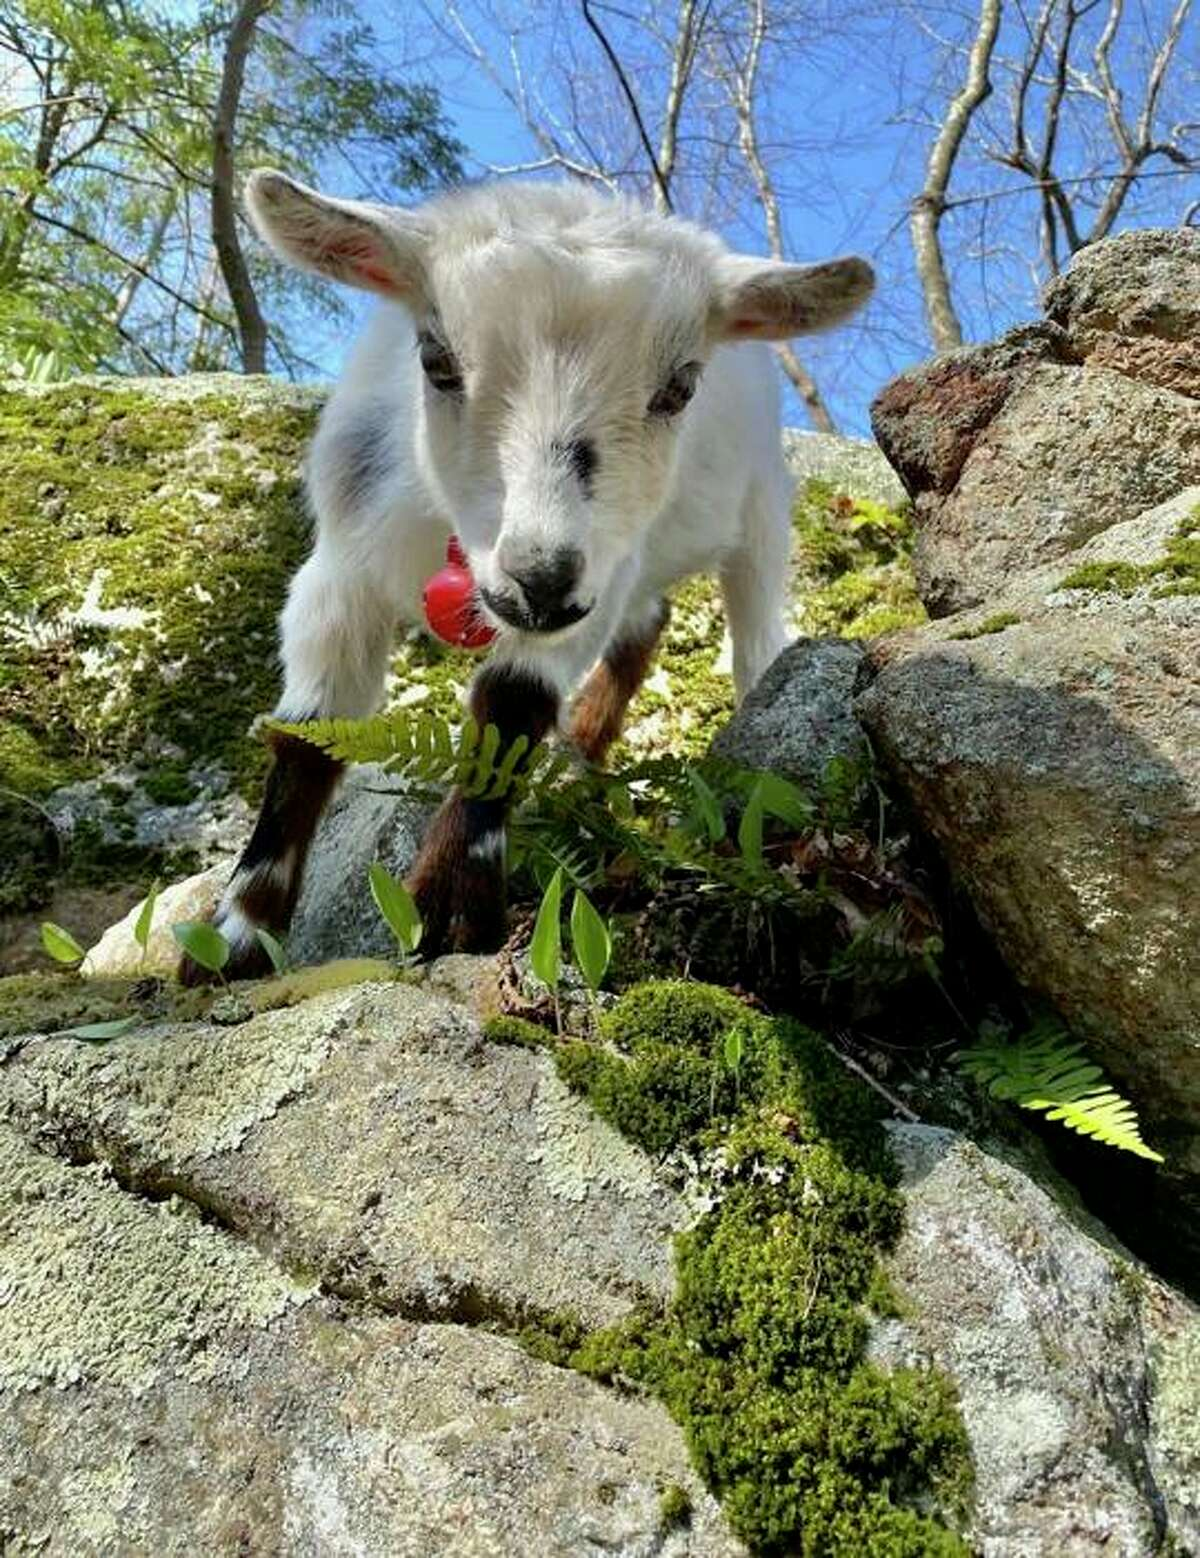 A young goat on one of Kristen Sassano Gill's hikes.